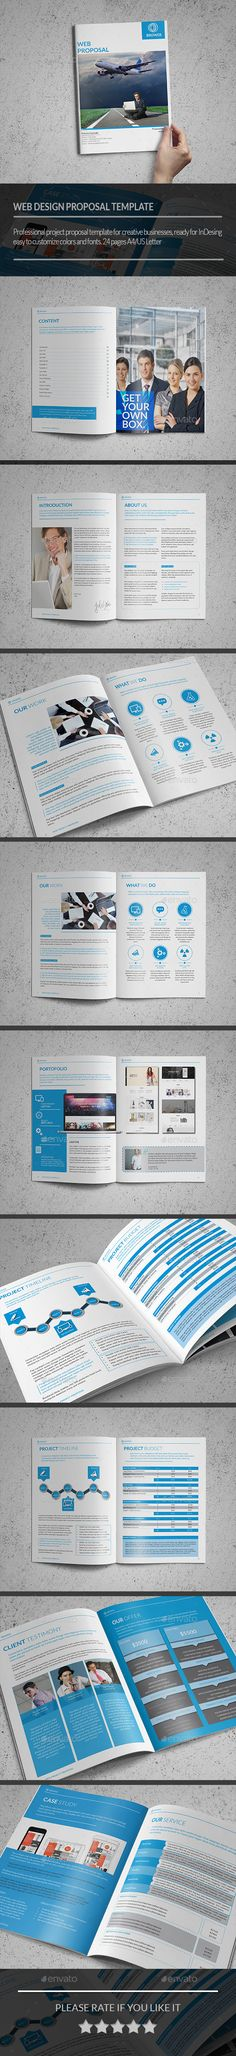 Three Strokes Media  Corporate Identity And Sationery On Behance